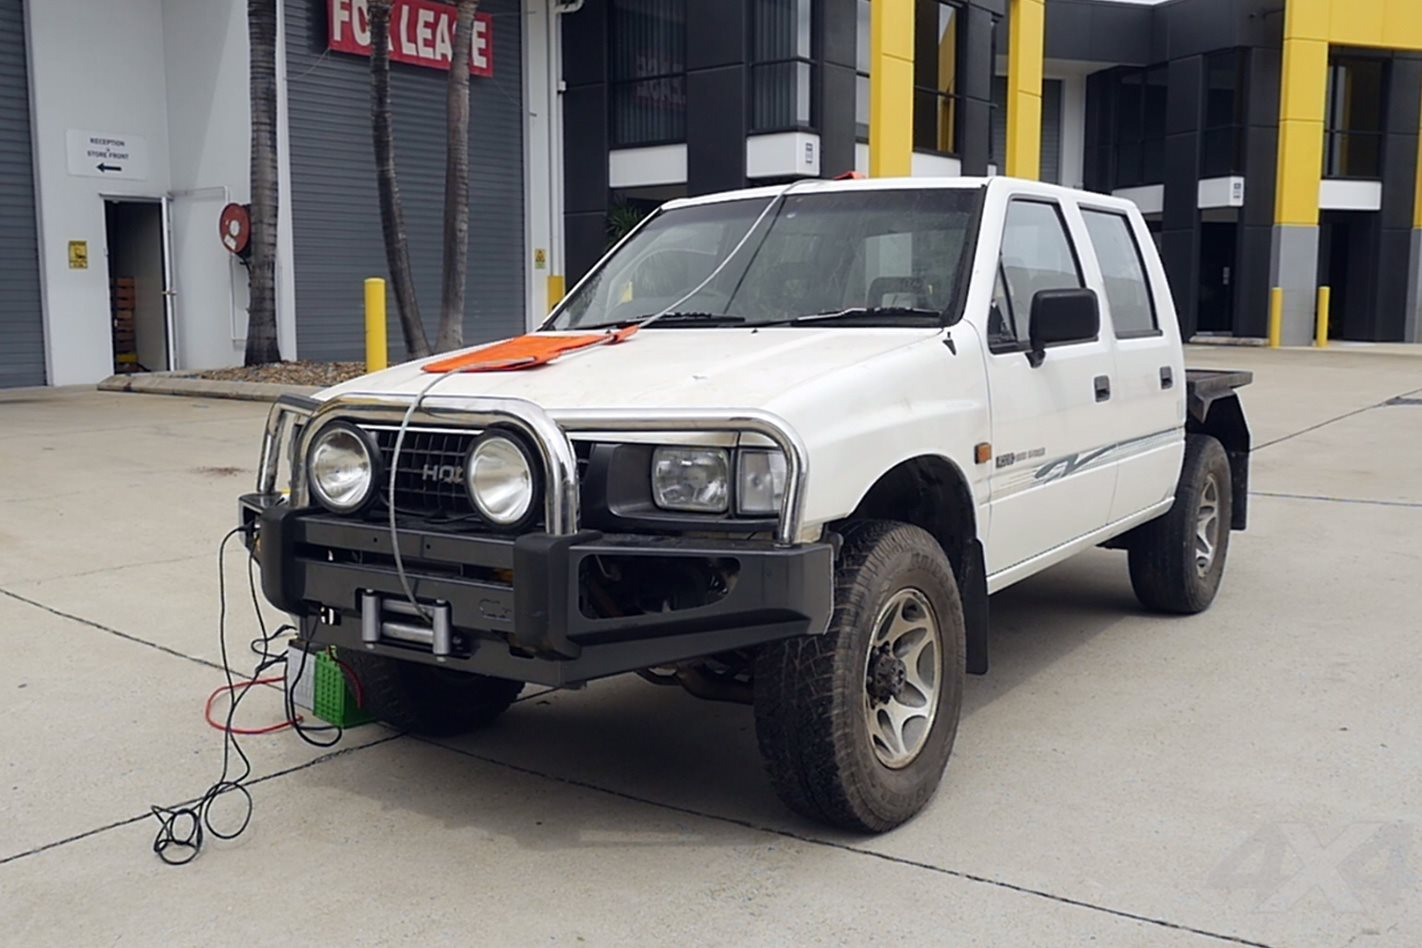 Winch crushes Holden Rodeo: Video